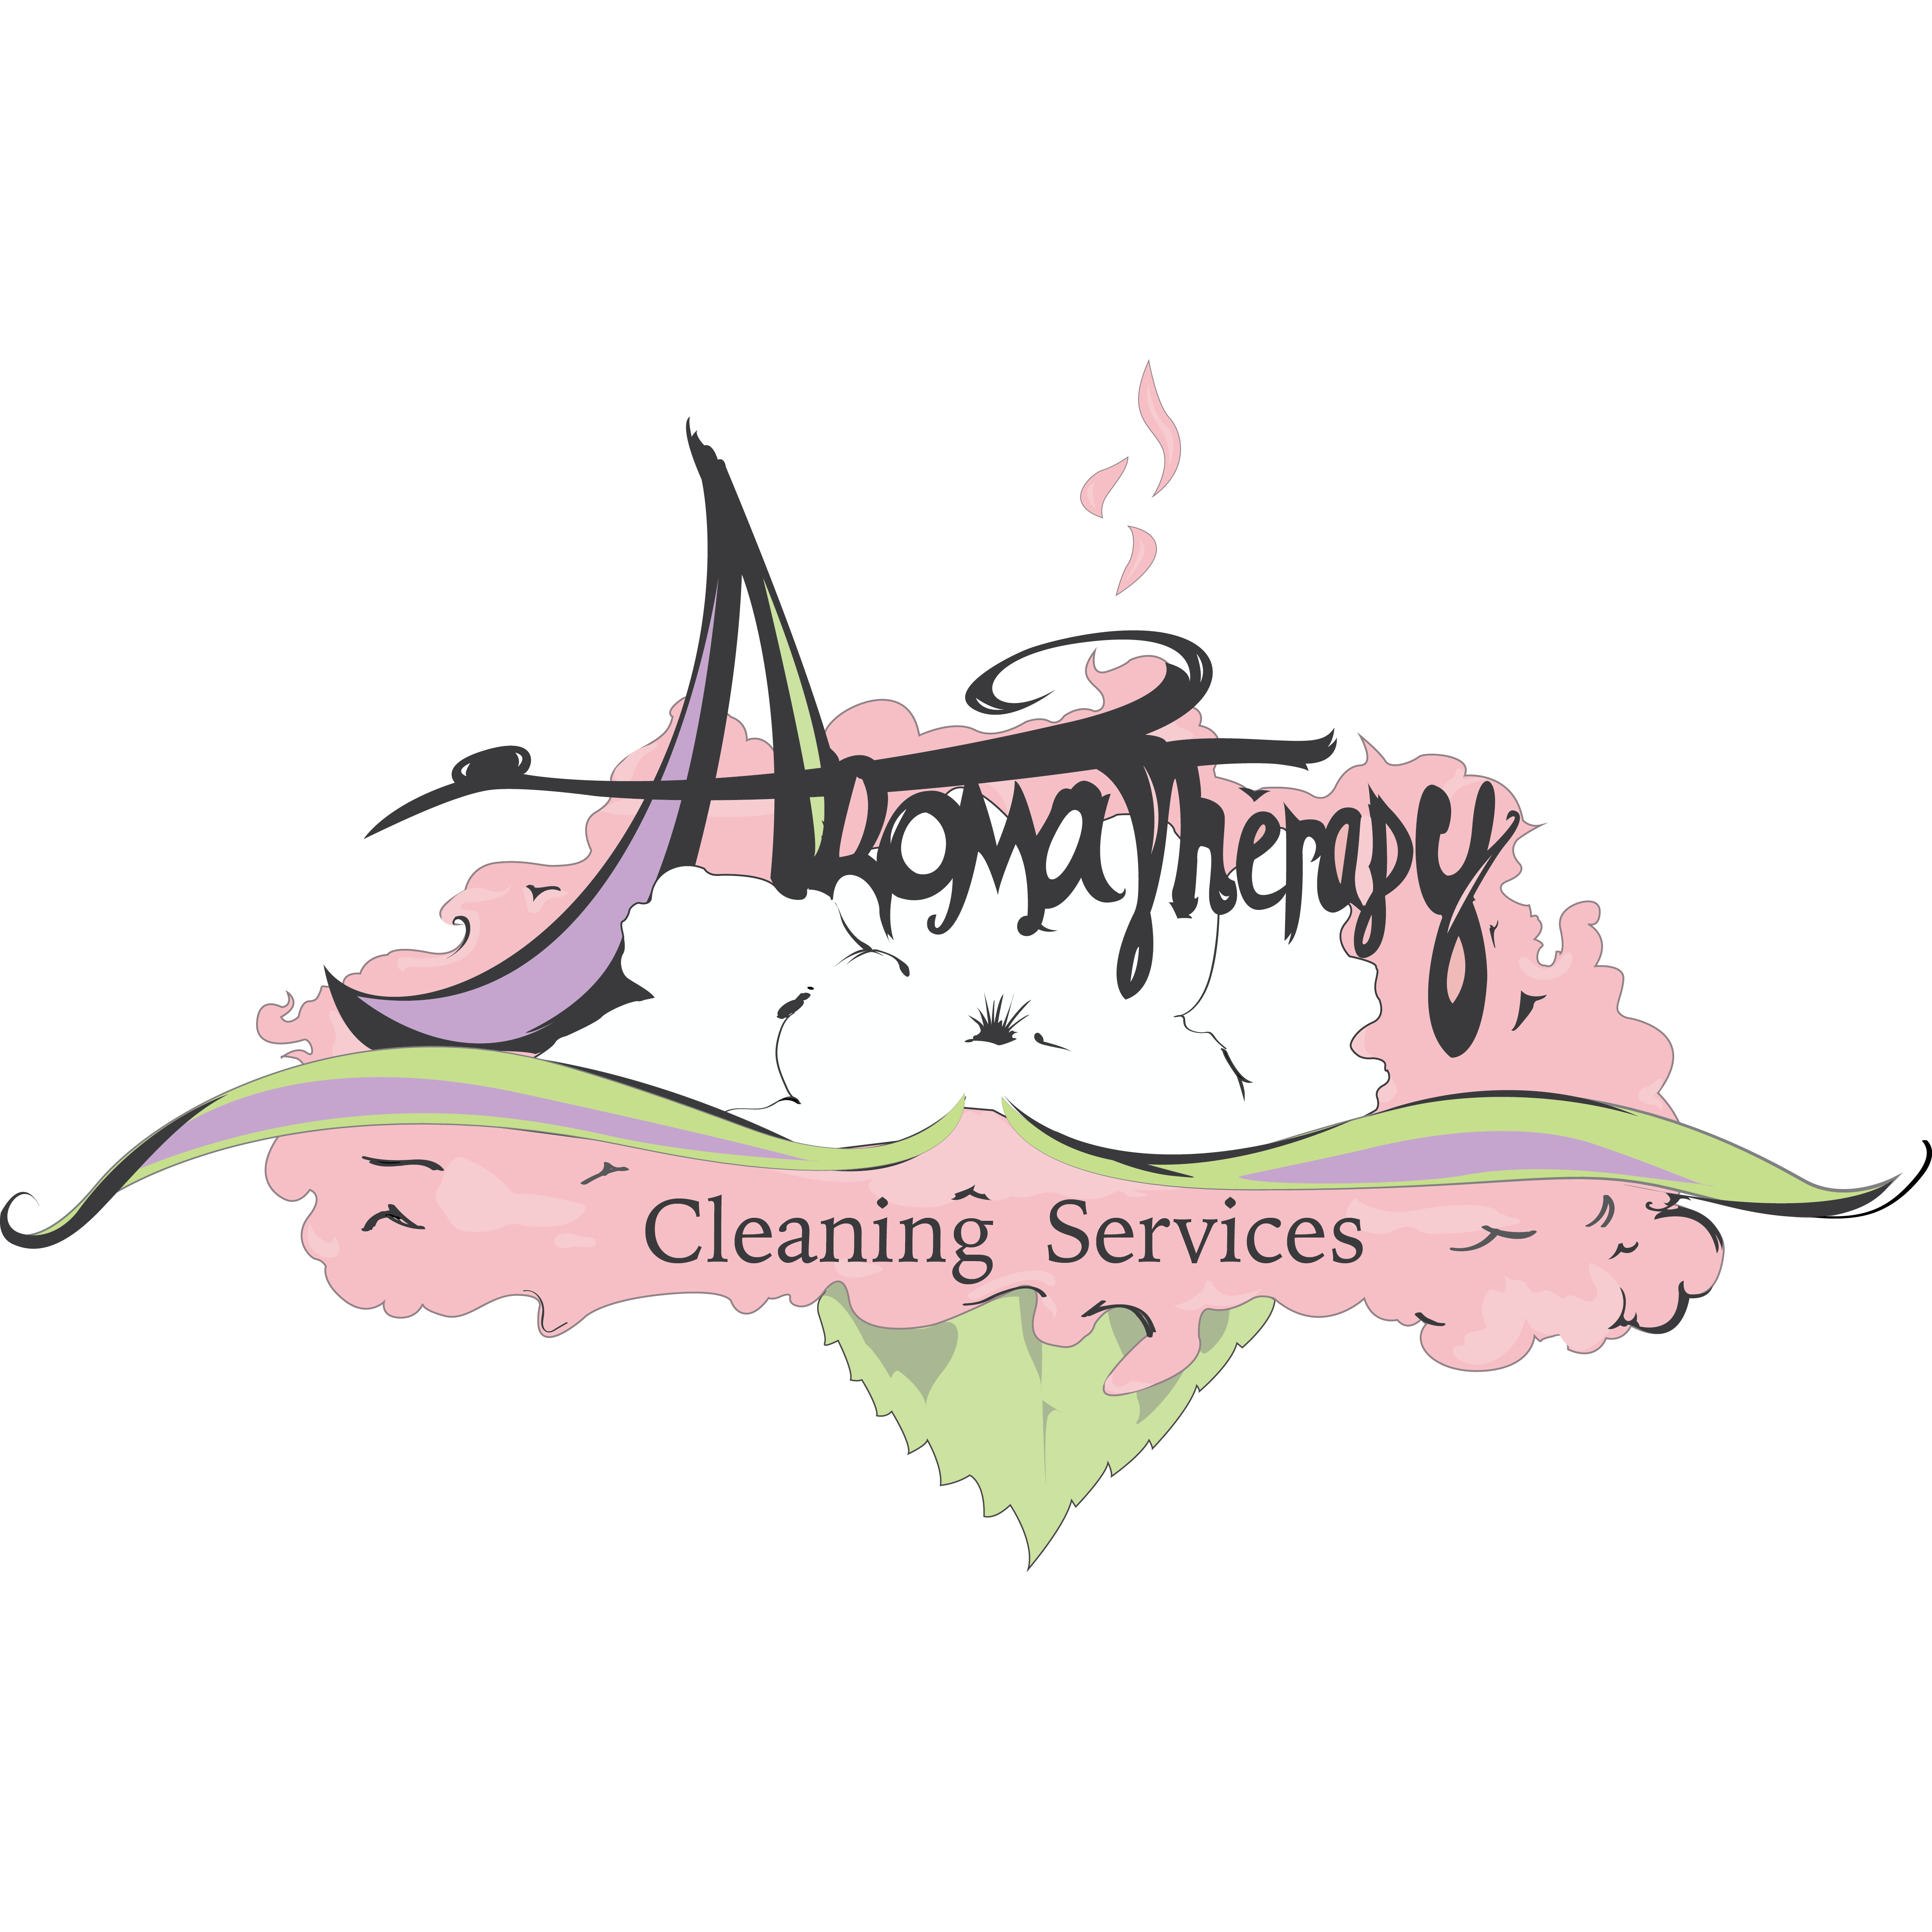 Aromatherapy Cleaning Services, LLC - Phenix City, AL 36870 - (706)426-5449 | ShowMeLocal.com